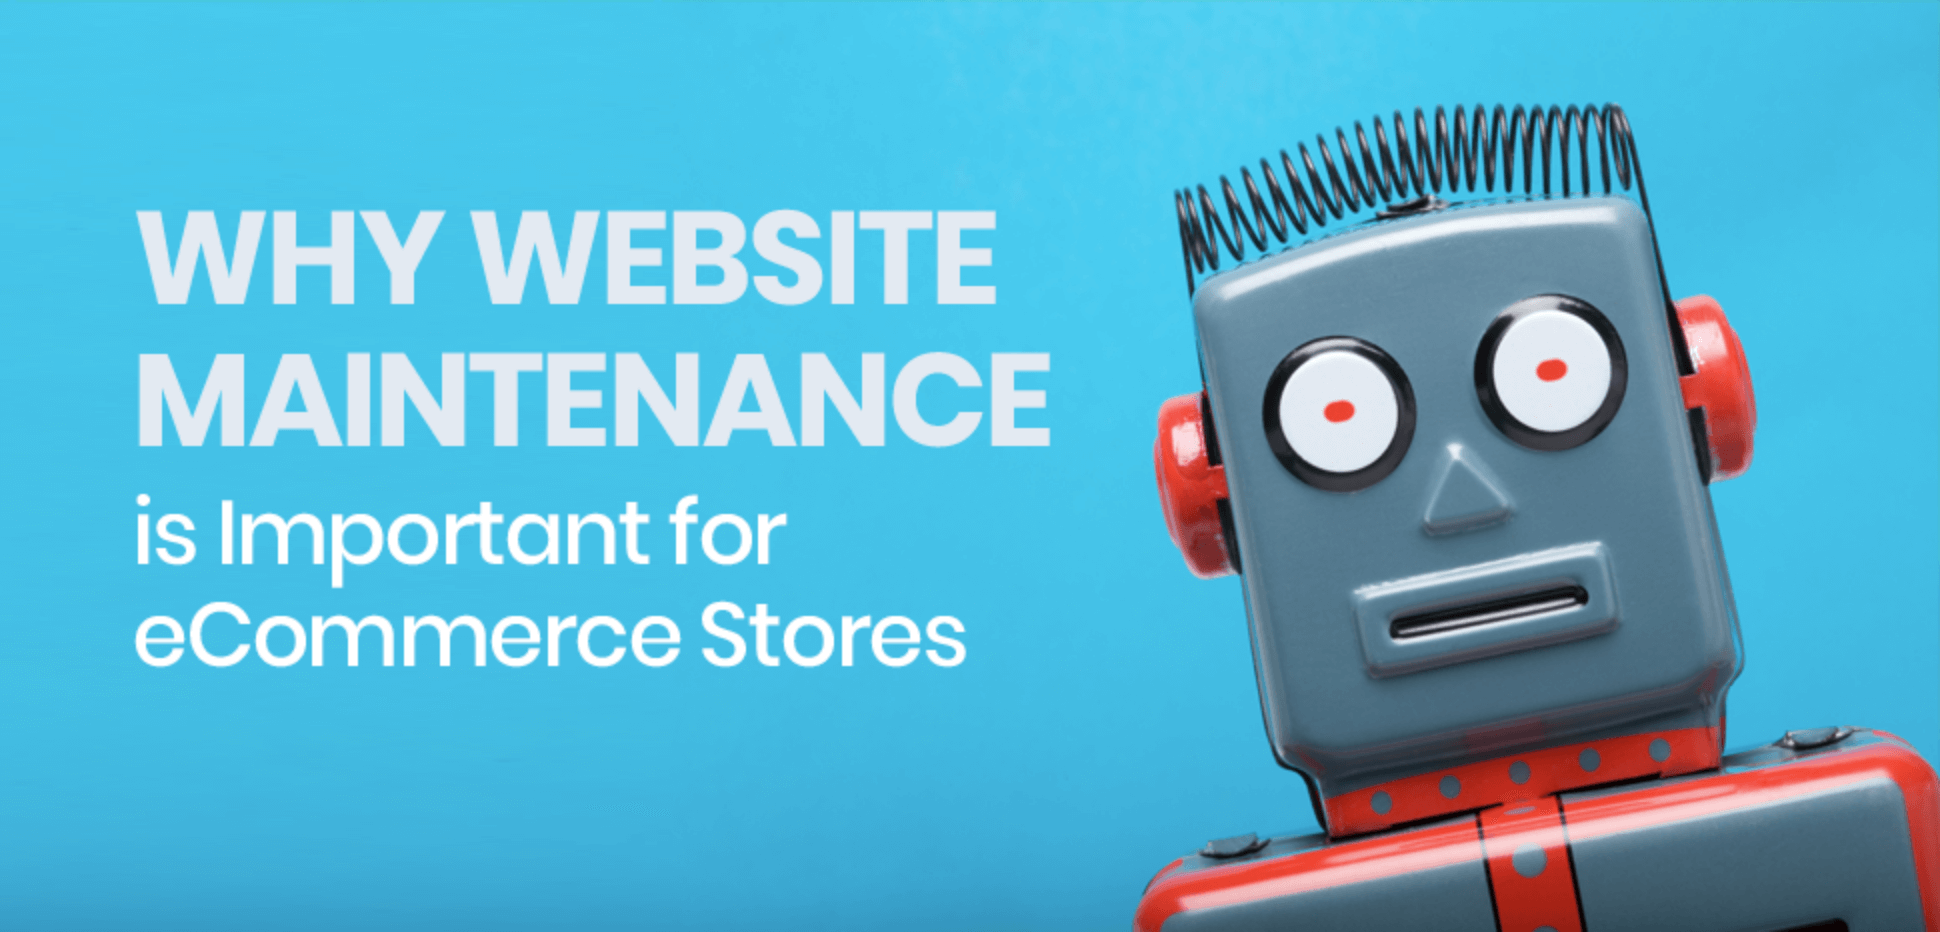 Why Website Maintenance is Important for eCommerce Stores